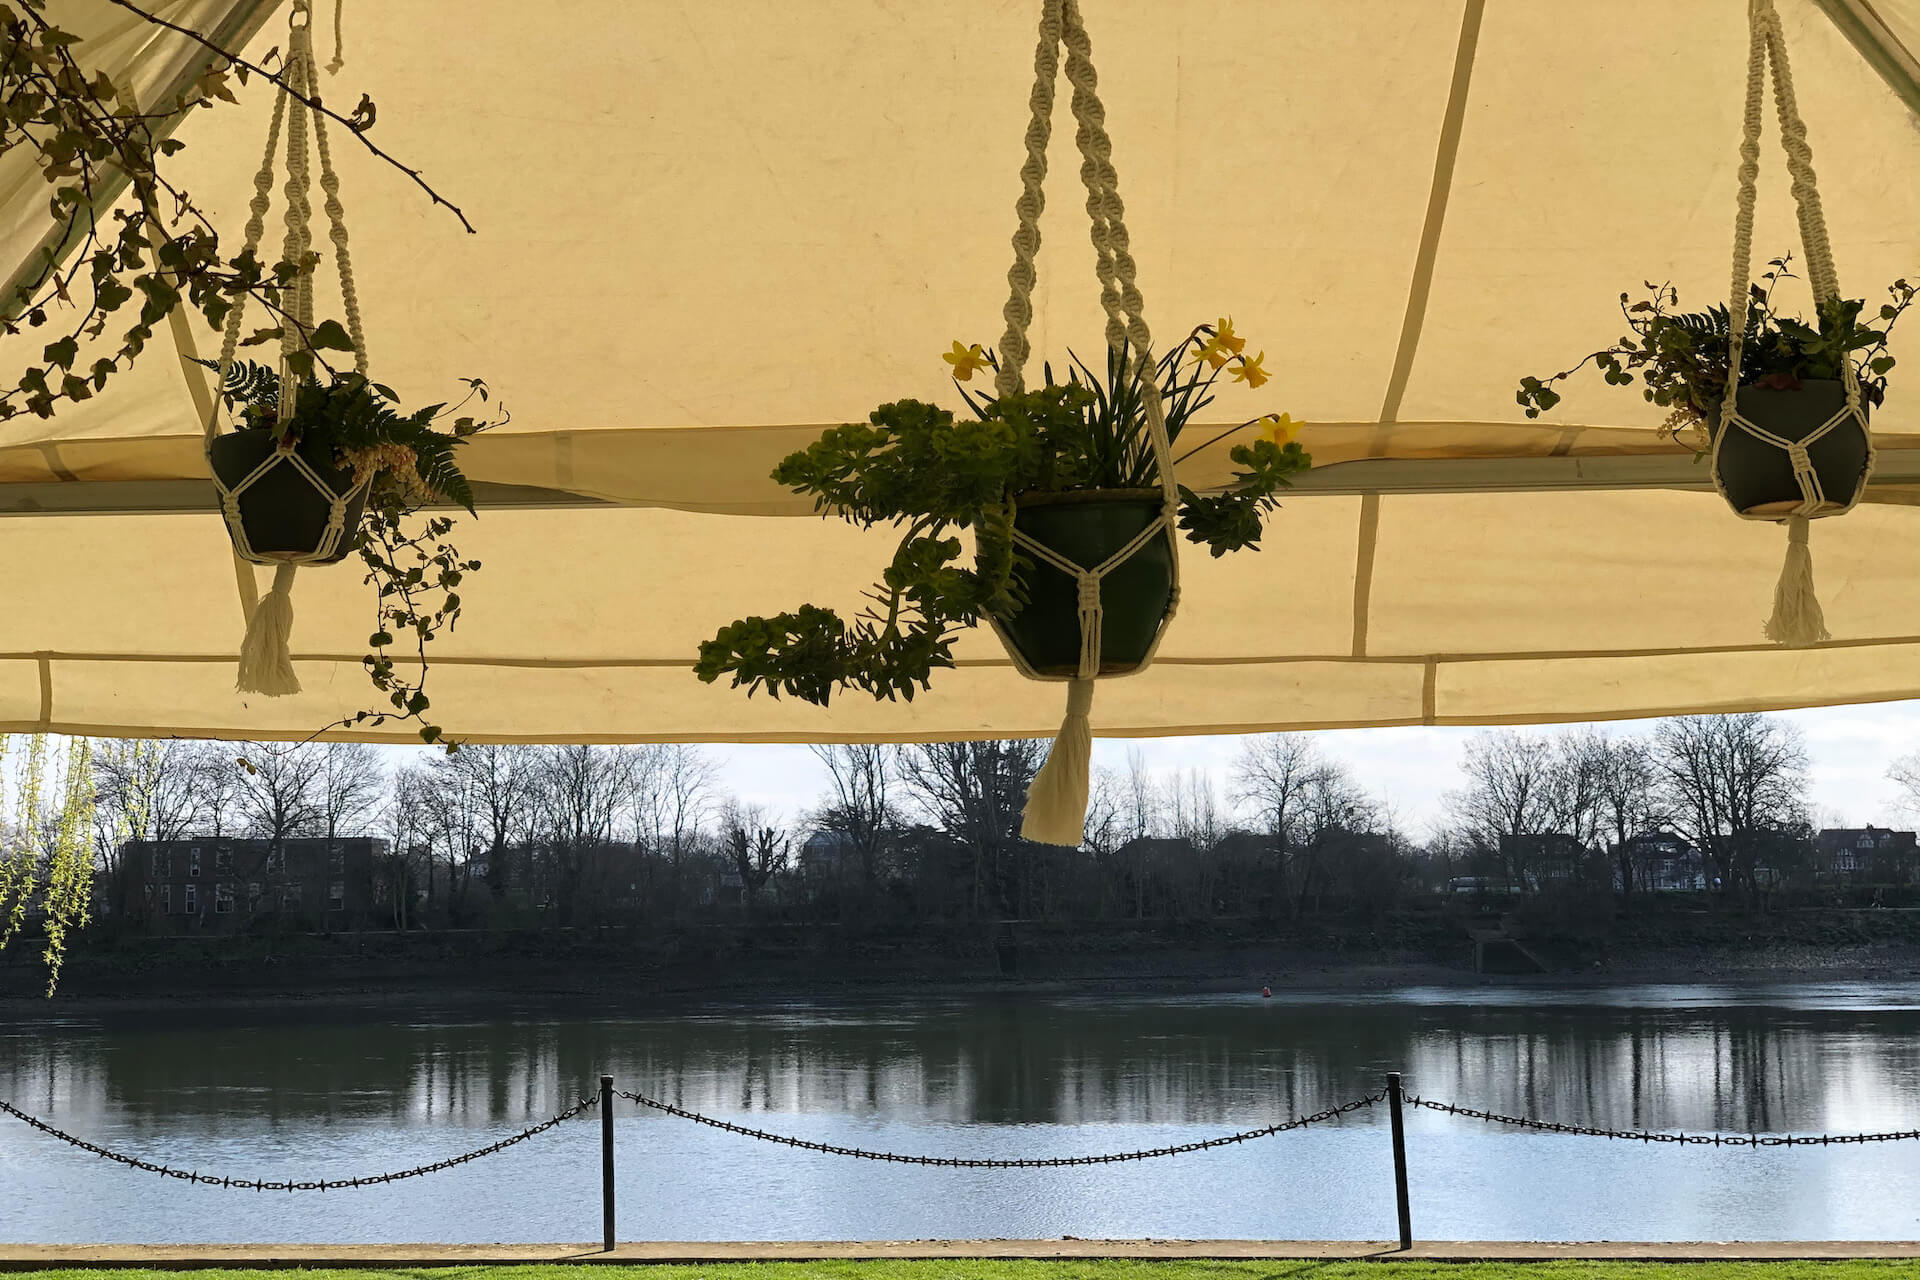 Plants hung in macrame hangers inside a canvas marquee